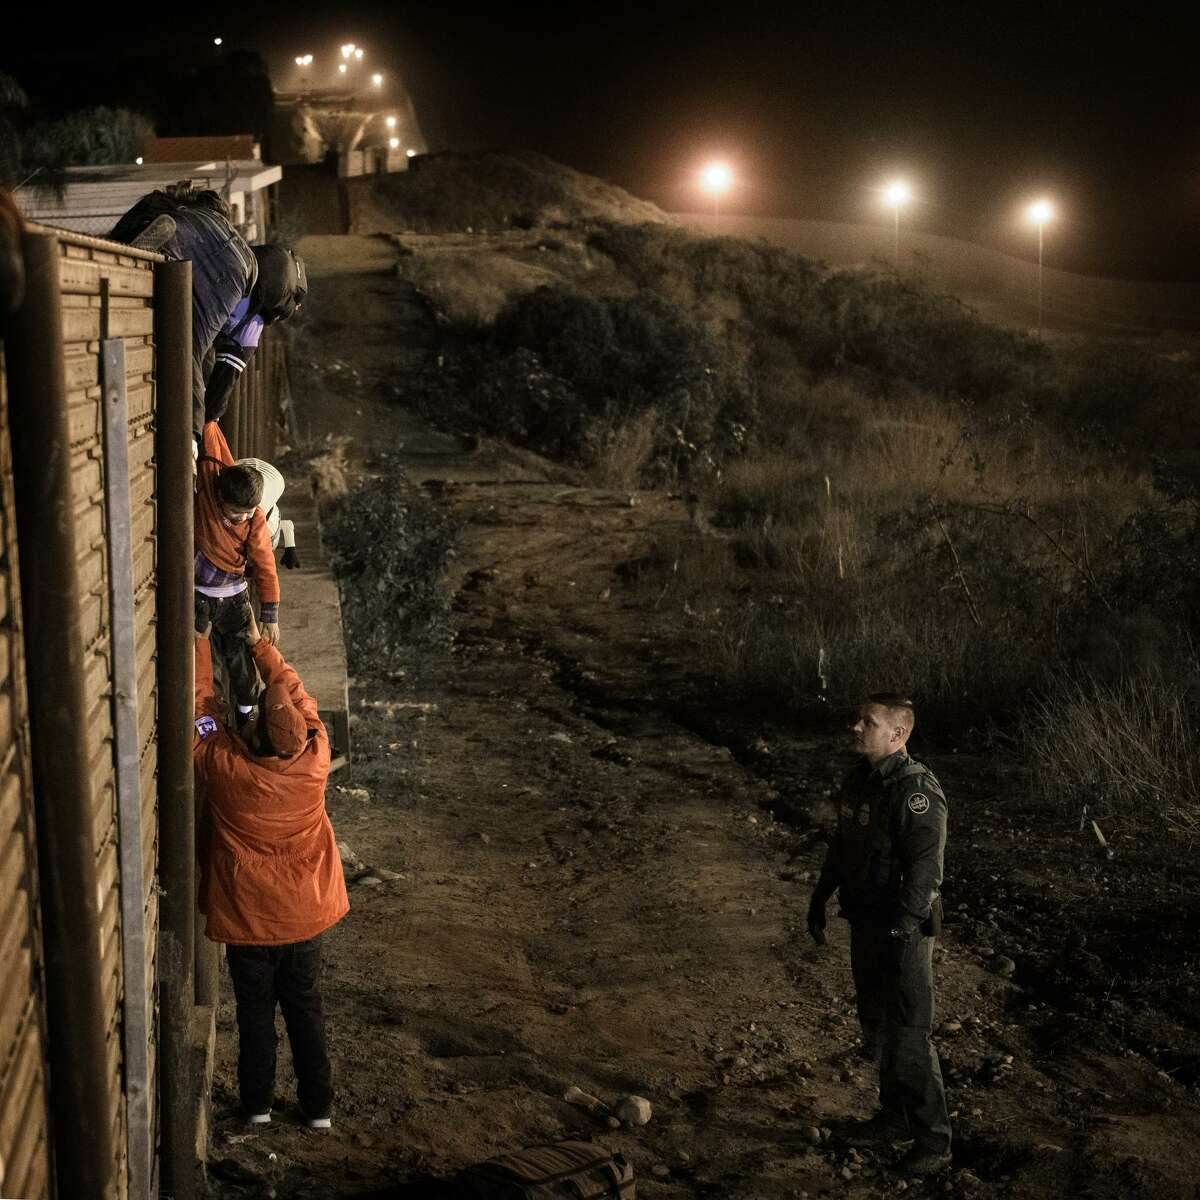 A migrant family from Honduras on Dec. 26 demonstrates the flaw of a border wall. People can climb over, here in the presence of the Border Patrol but just as easily outside its presence.